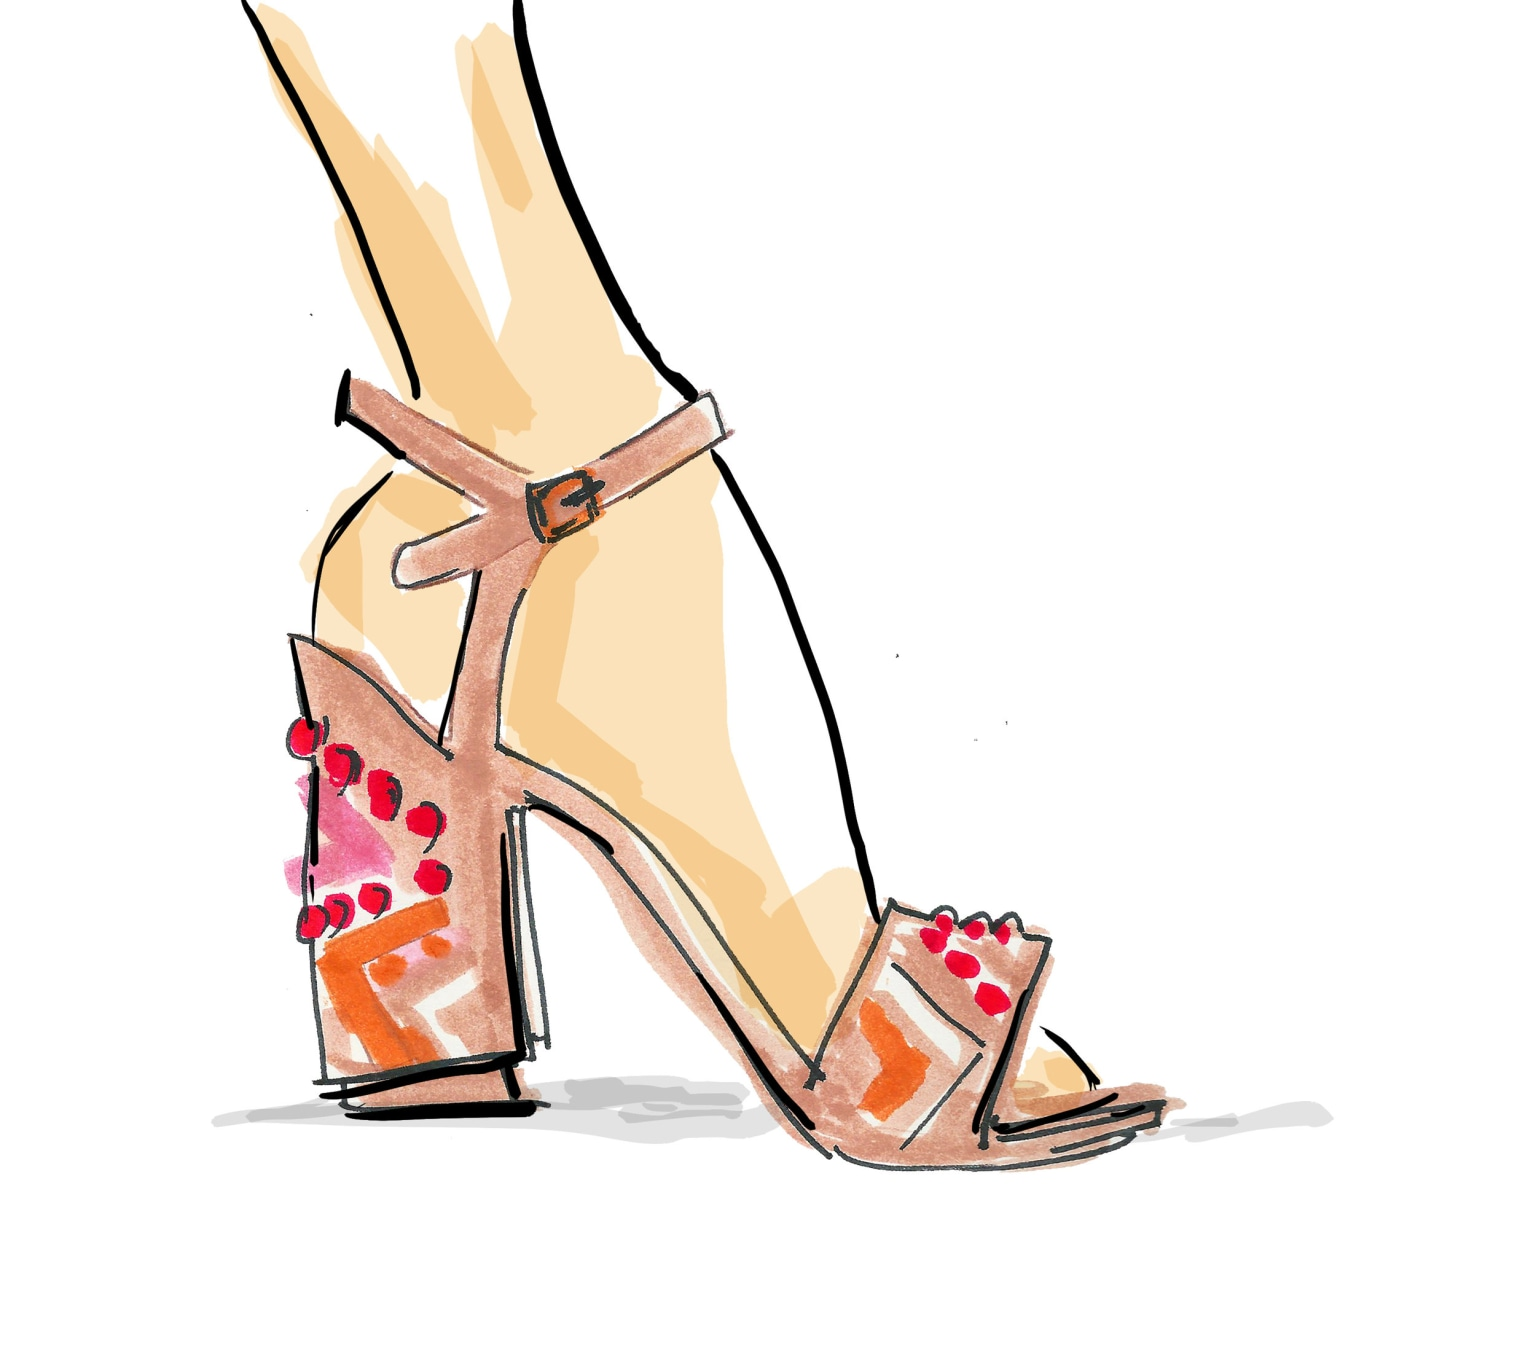 STUART WEITZMAN ILLUSTRATIONS